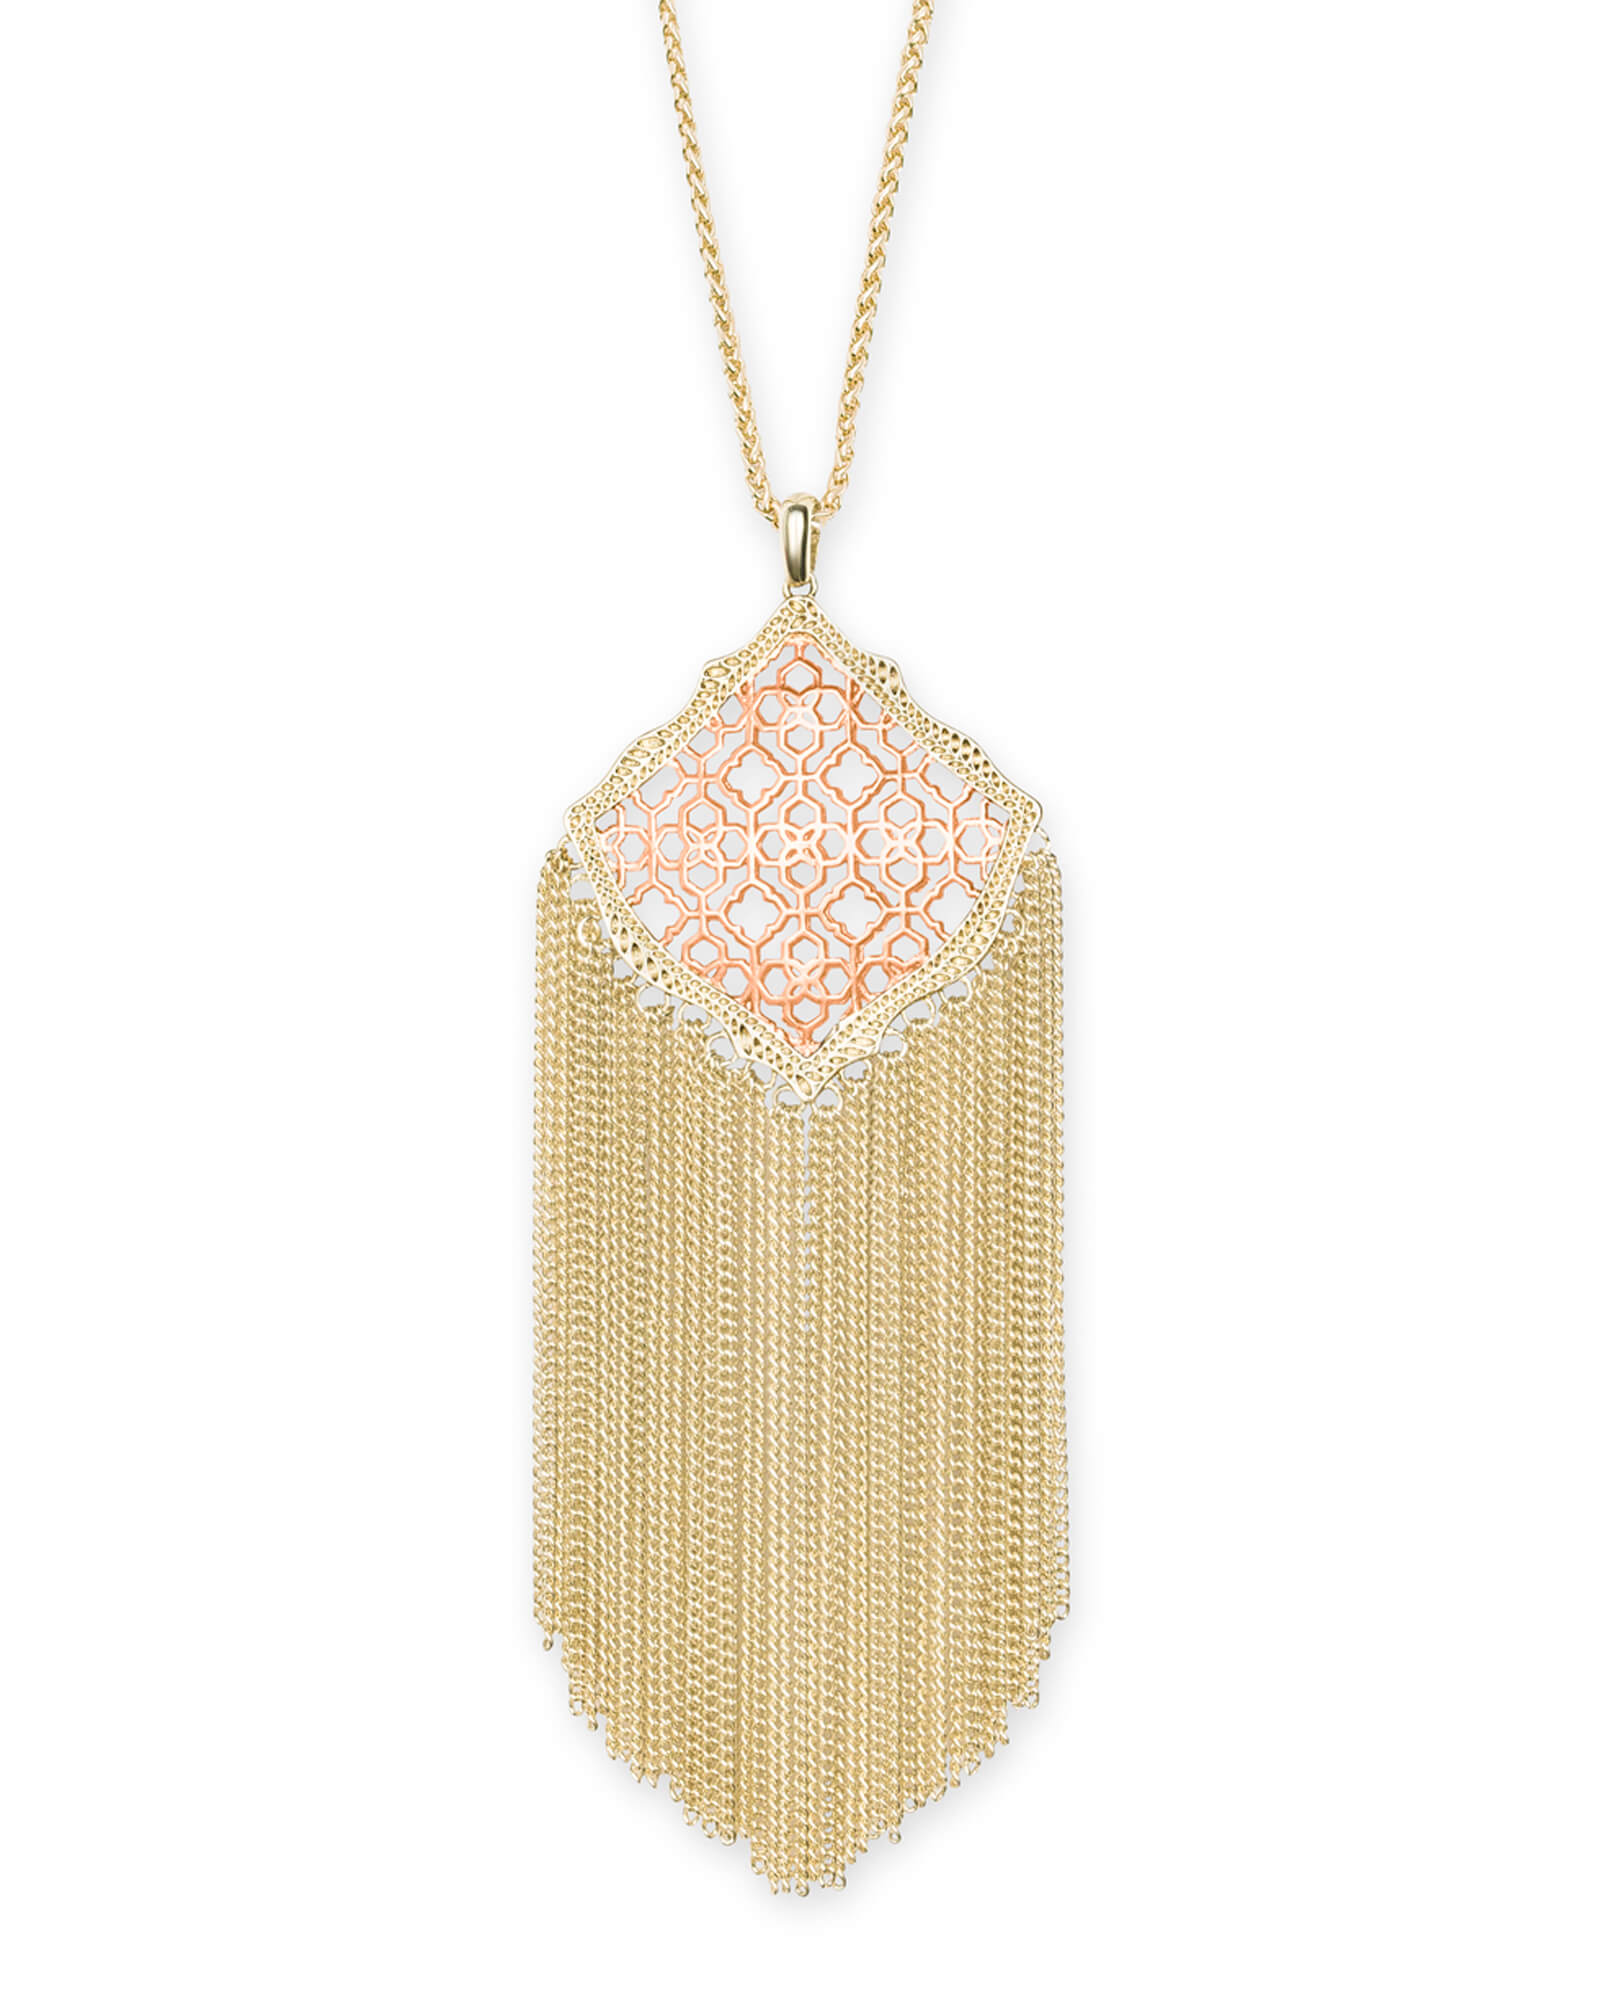 Kingston Gold Long Pendant Necklace in Rose Gold Filigree Mix